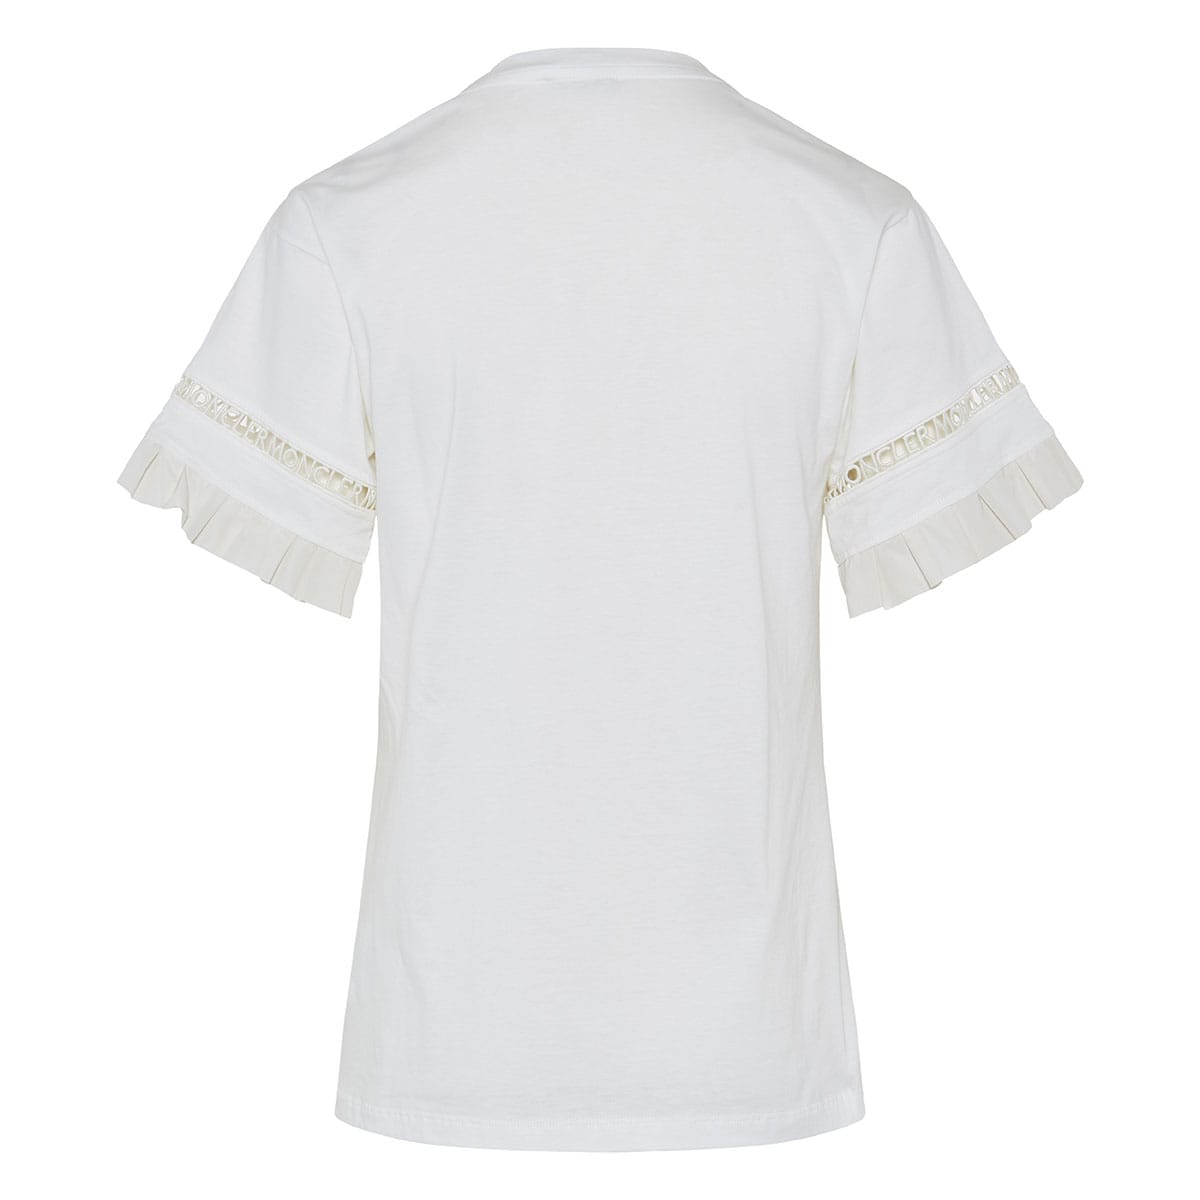 Frilled t-shirt with macrame logo